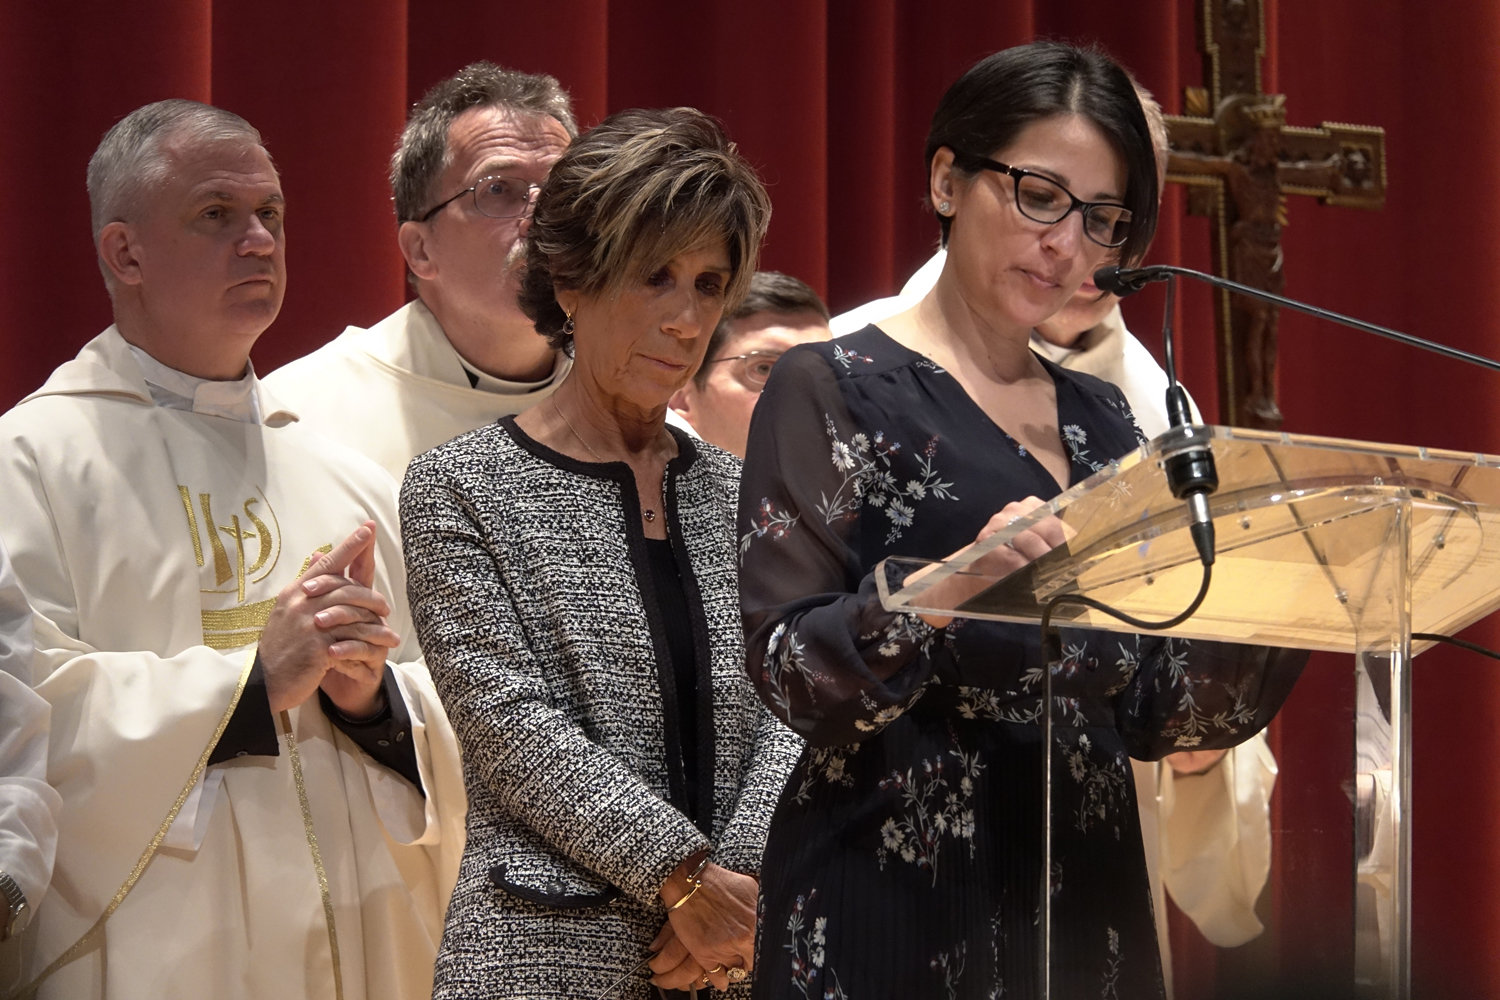 During the morning Mass, the general intercessions were delivered by Teresa Letizia, principal of St. Ann's School in Manhattan, and Fran Mastropietro, a teacher at St. Anthony School in Nanuet.